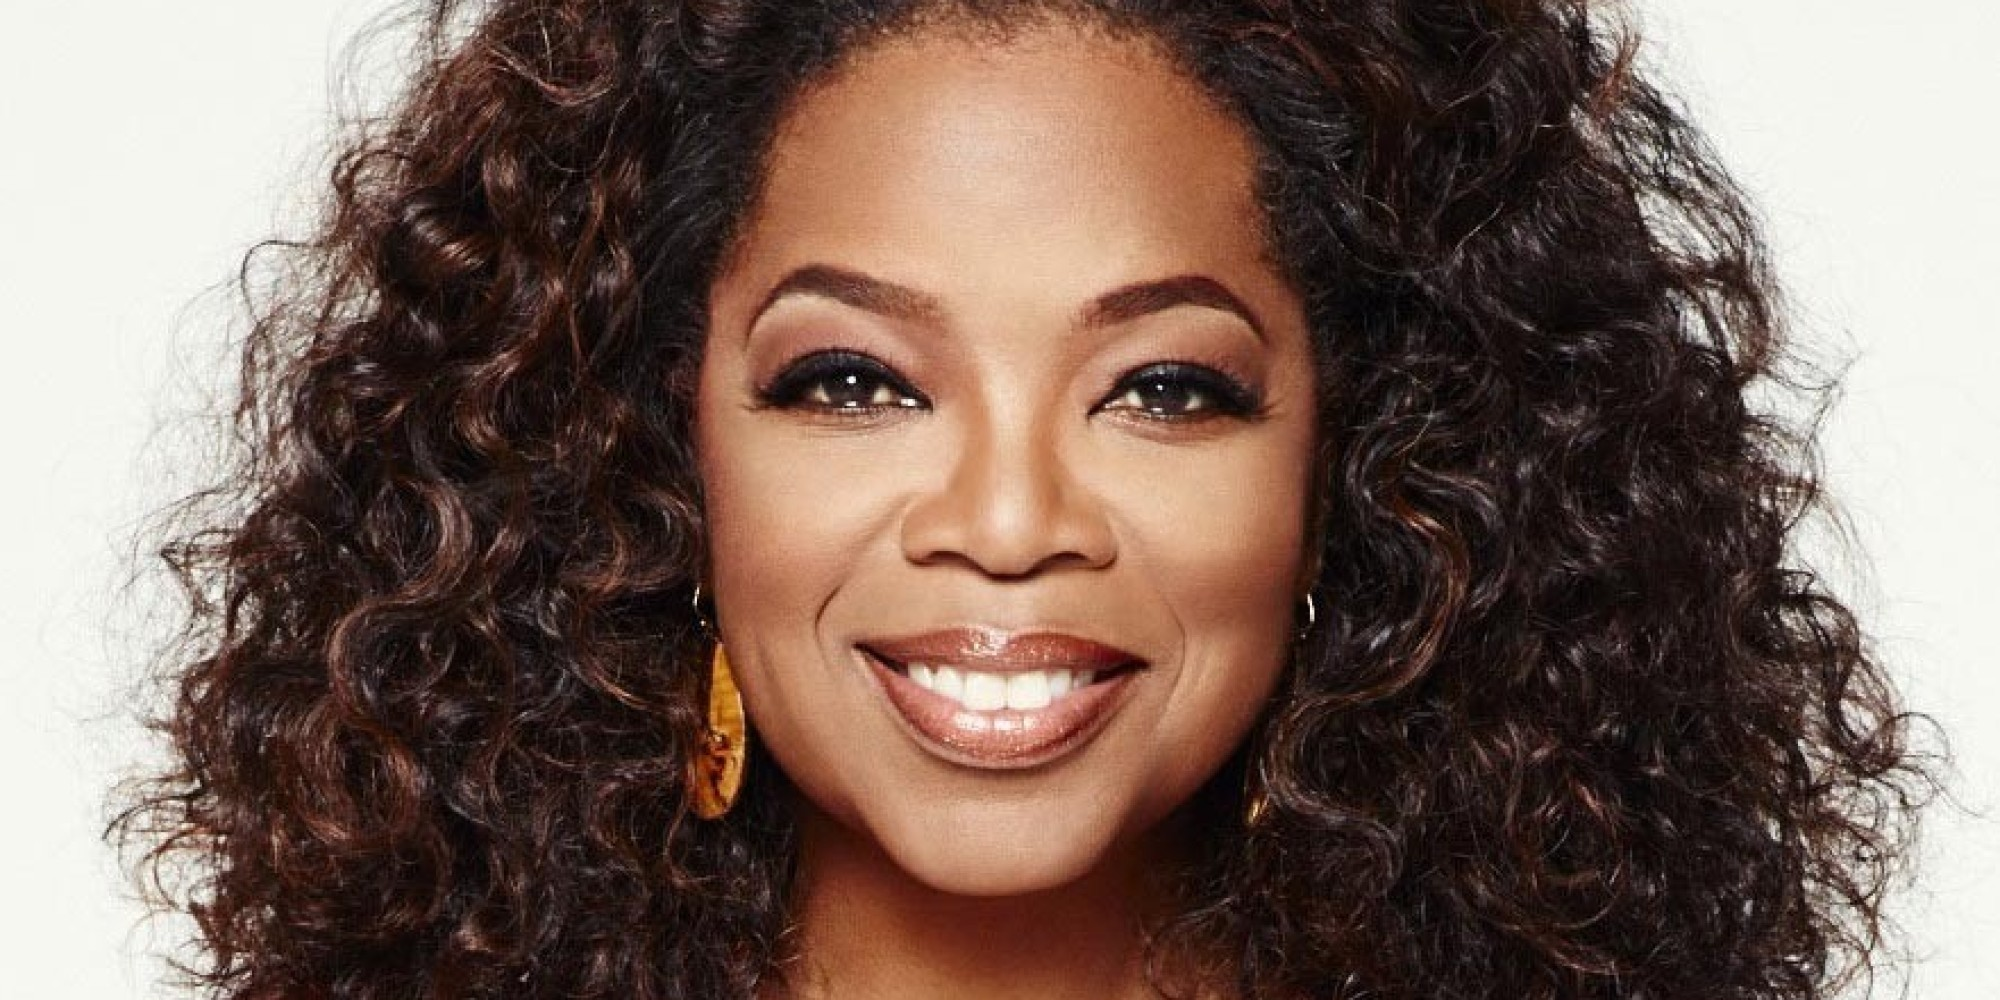 oprah asks the question what do you believe the huffington post